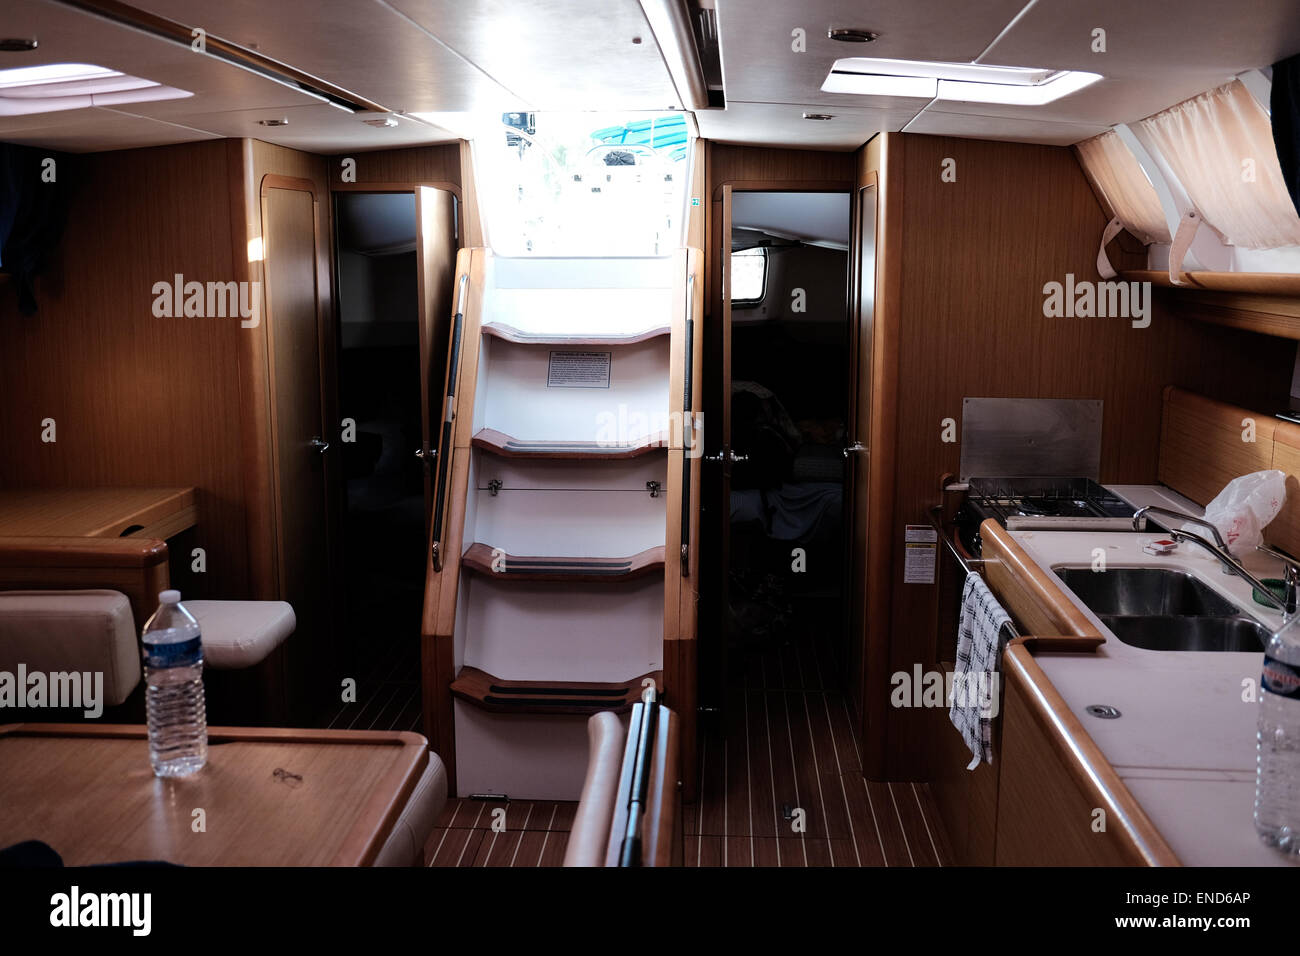 Inside cabin of a 44-foot sailing yacht Stock Photo